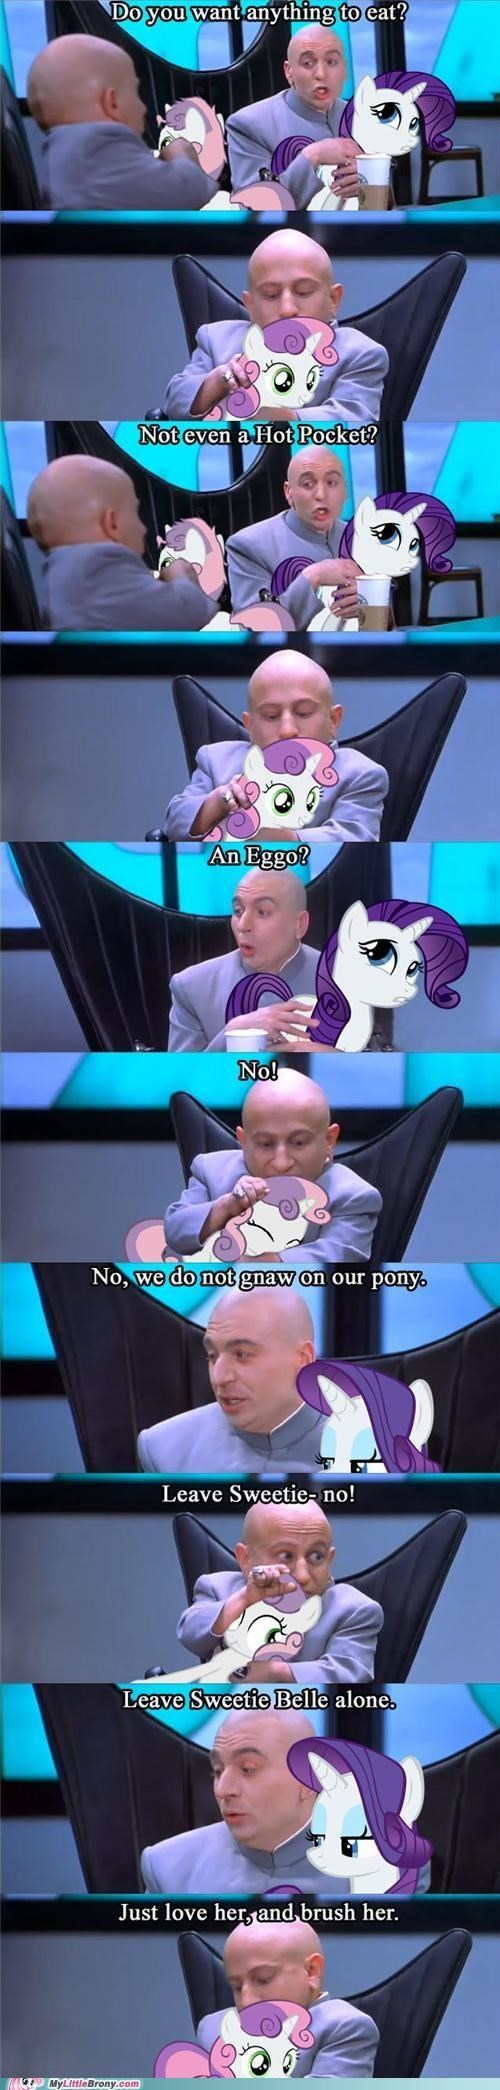 austin powers comics dr-evil rarity Sweetie Belle - 5148564224